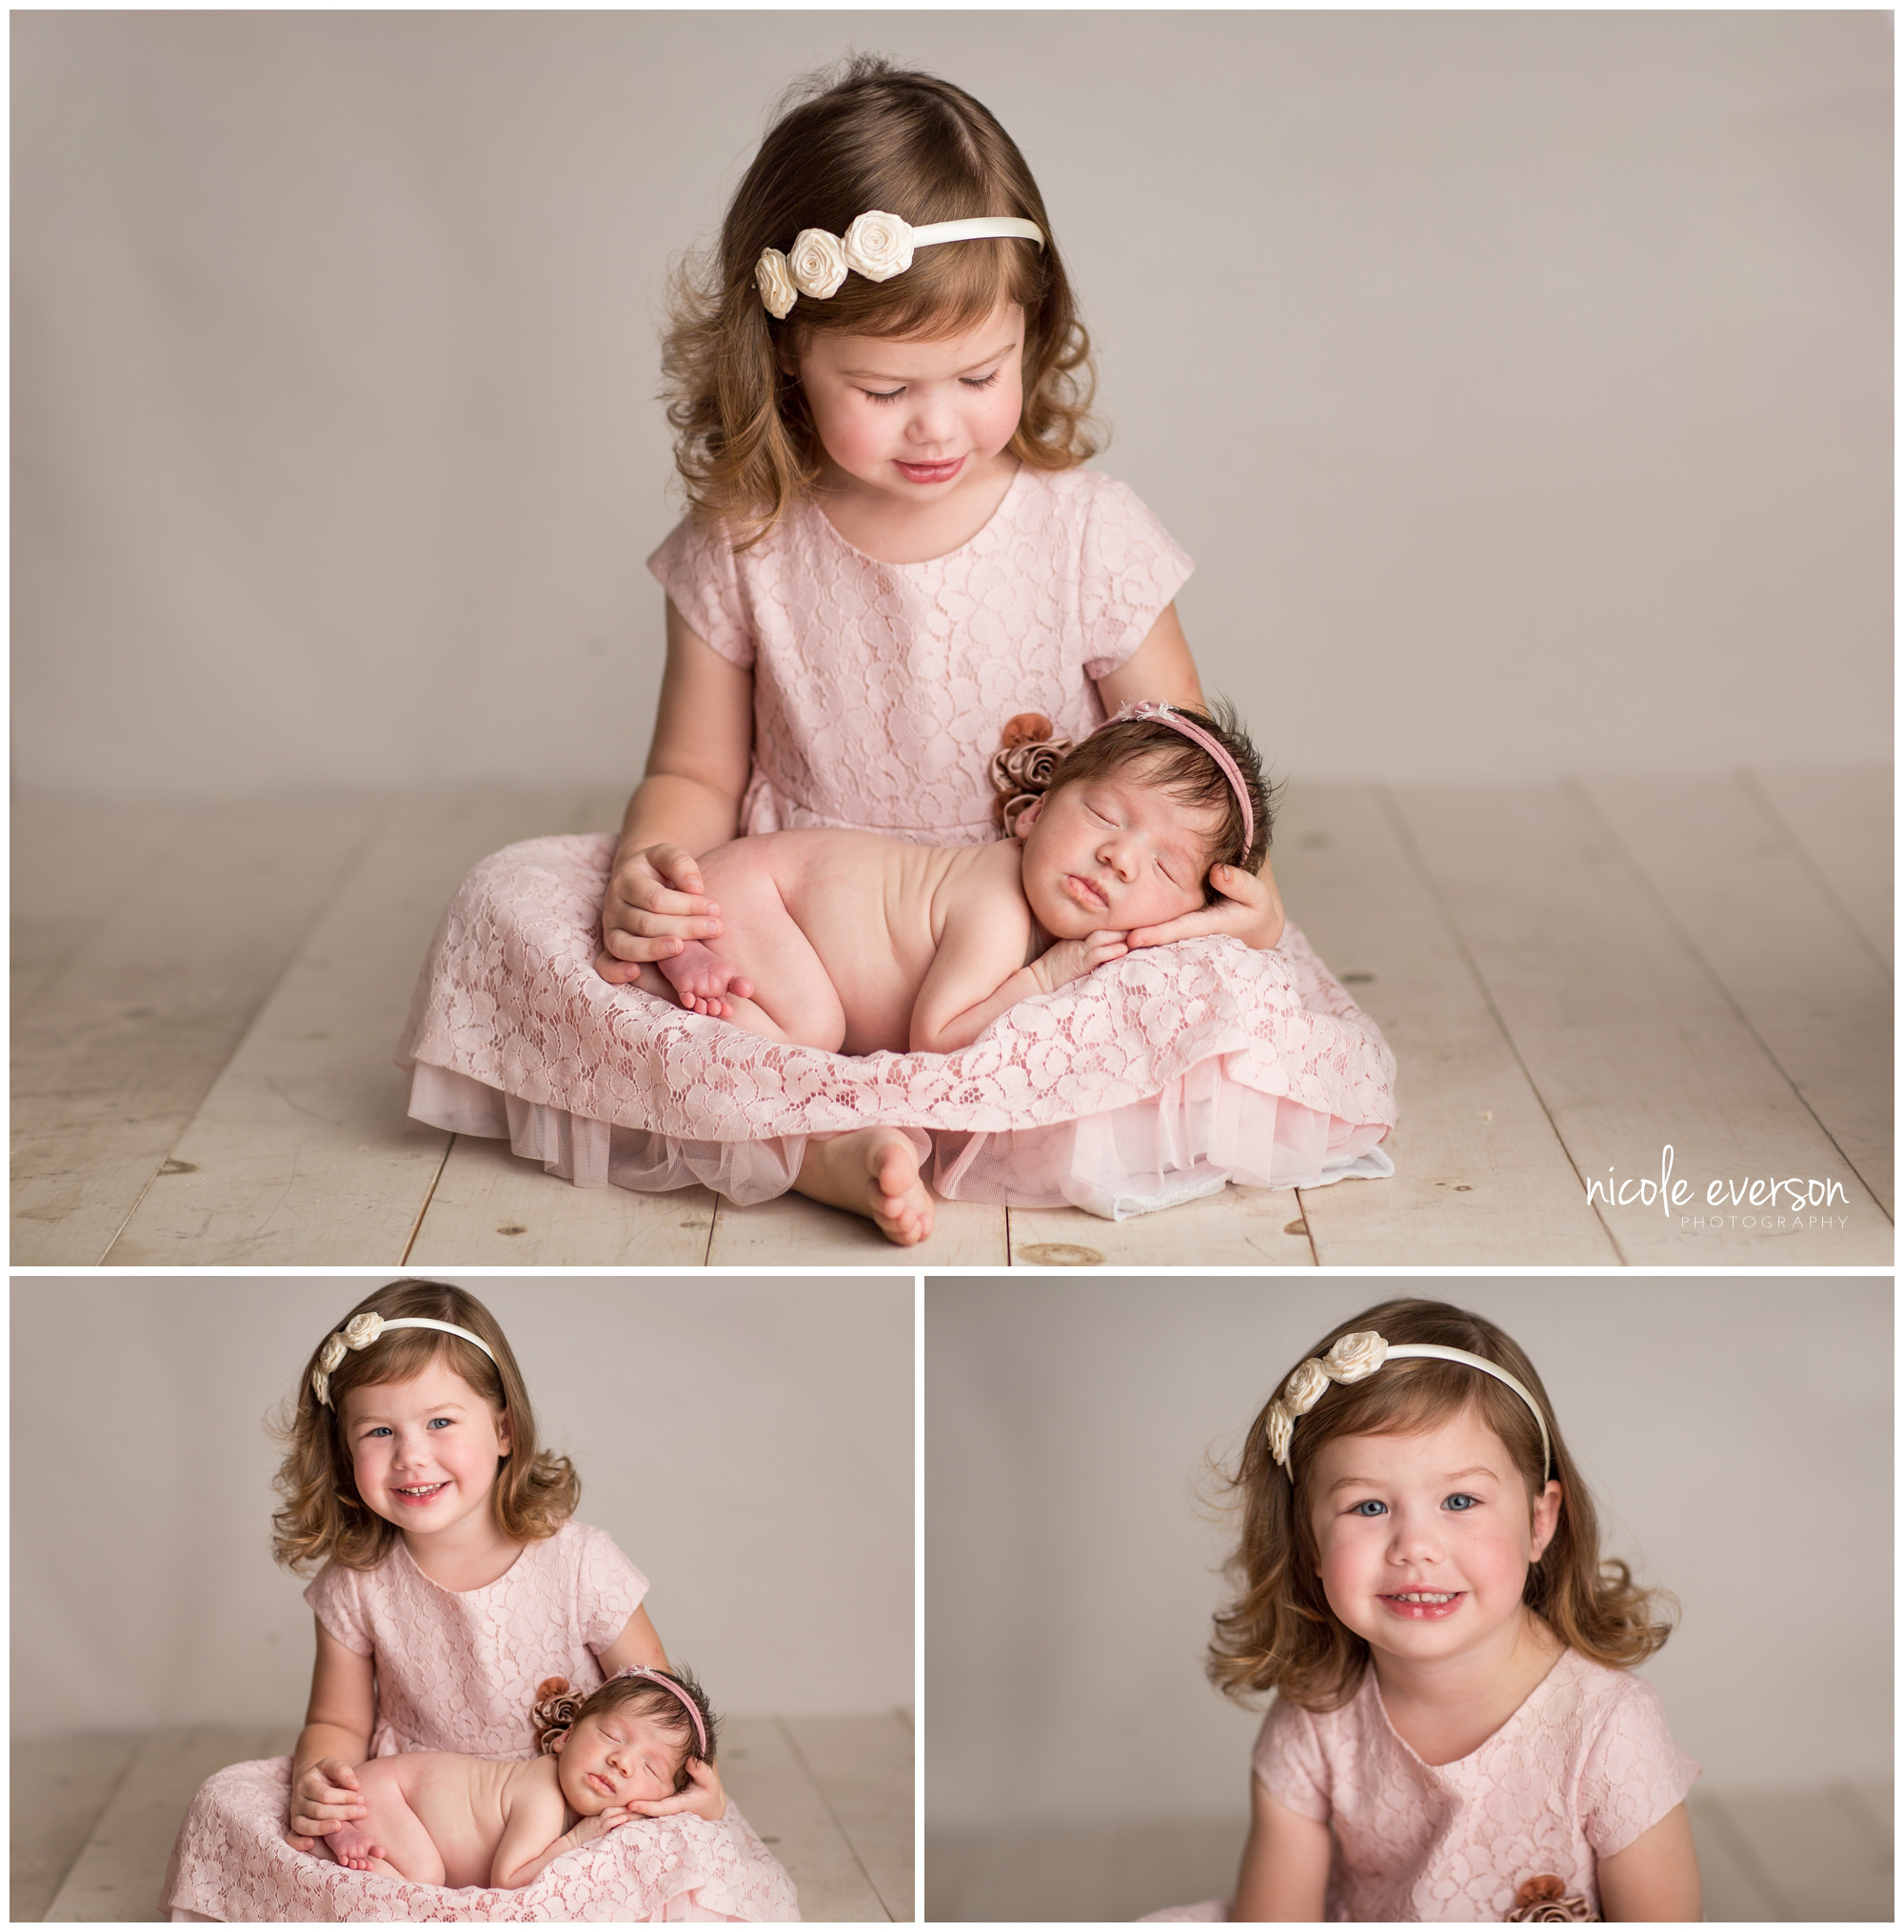 newborn photo with big sister holding baby sister